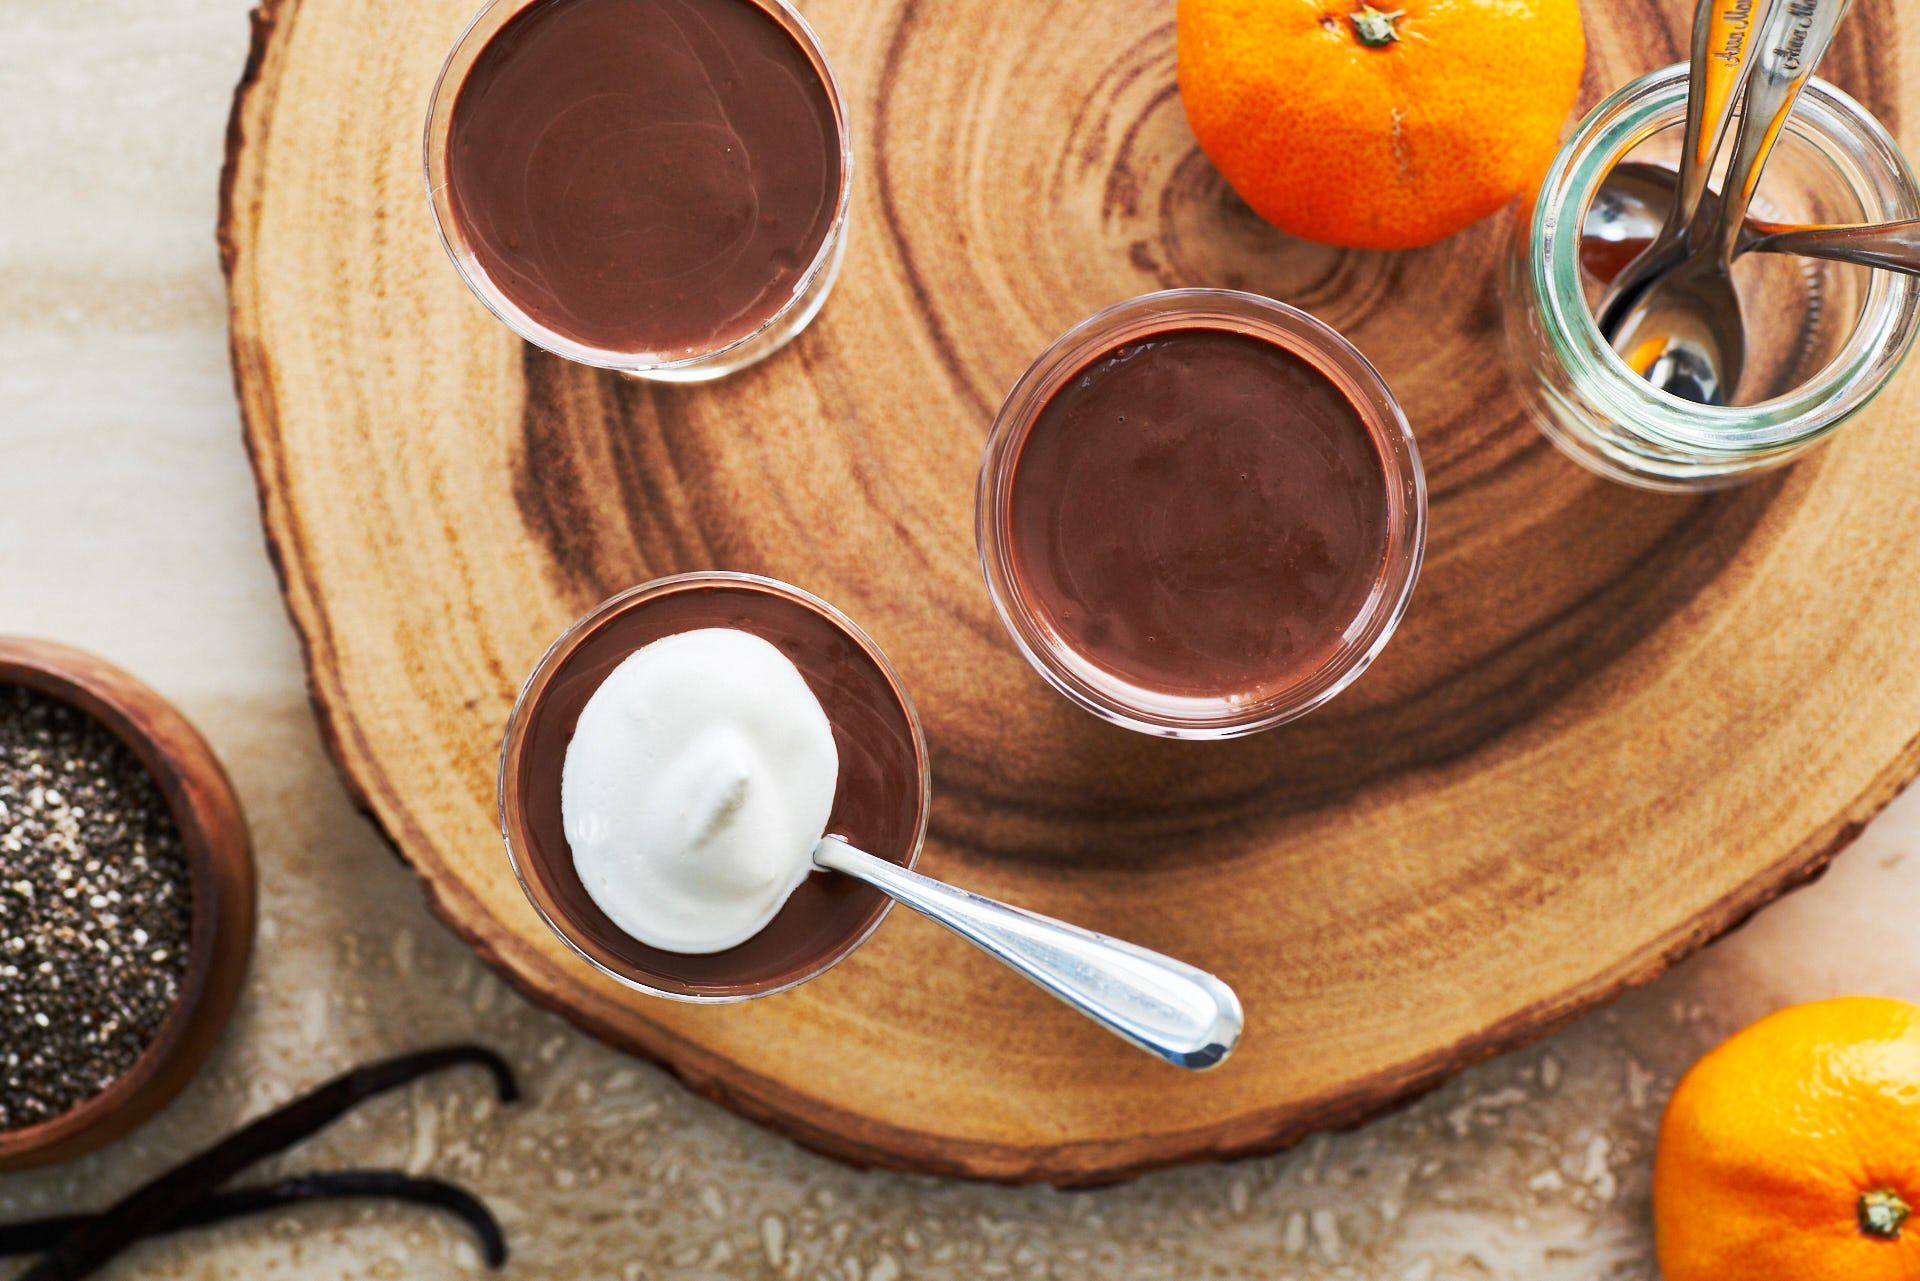 Made with coconut milk, cocoa powder, and chia seeds, this indulgent chocolate pudding comes together in under a minute.